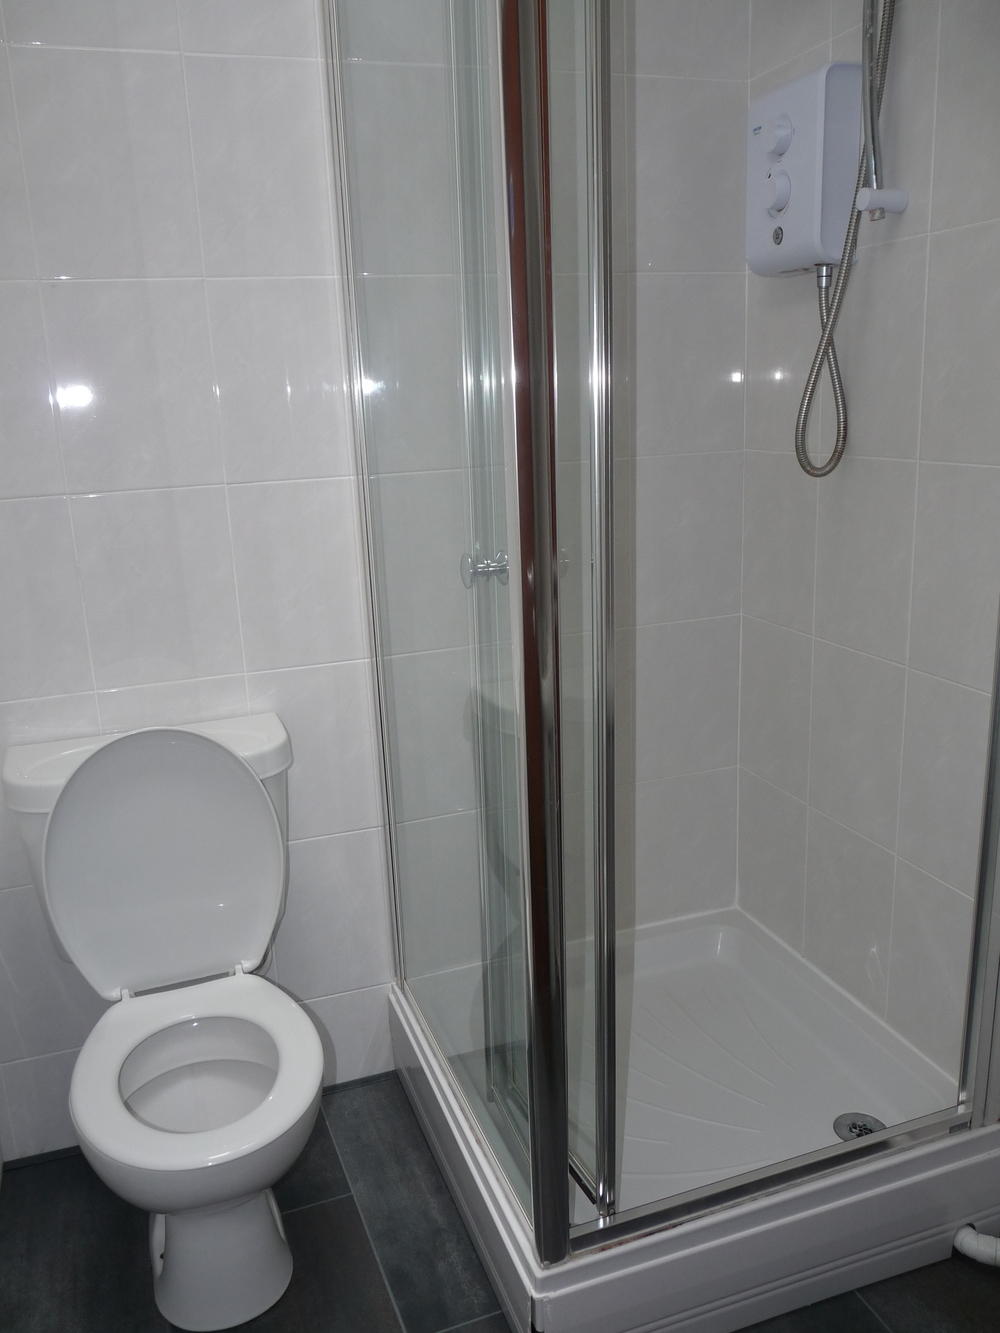 181 Bathroom 2.JPG